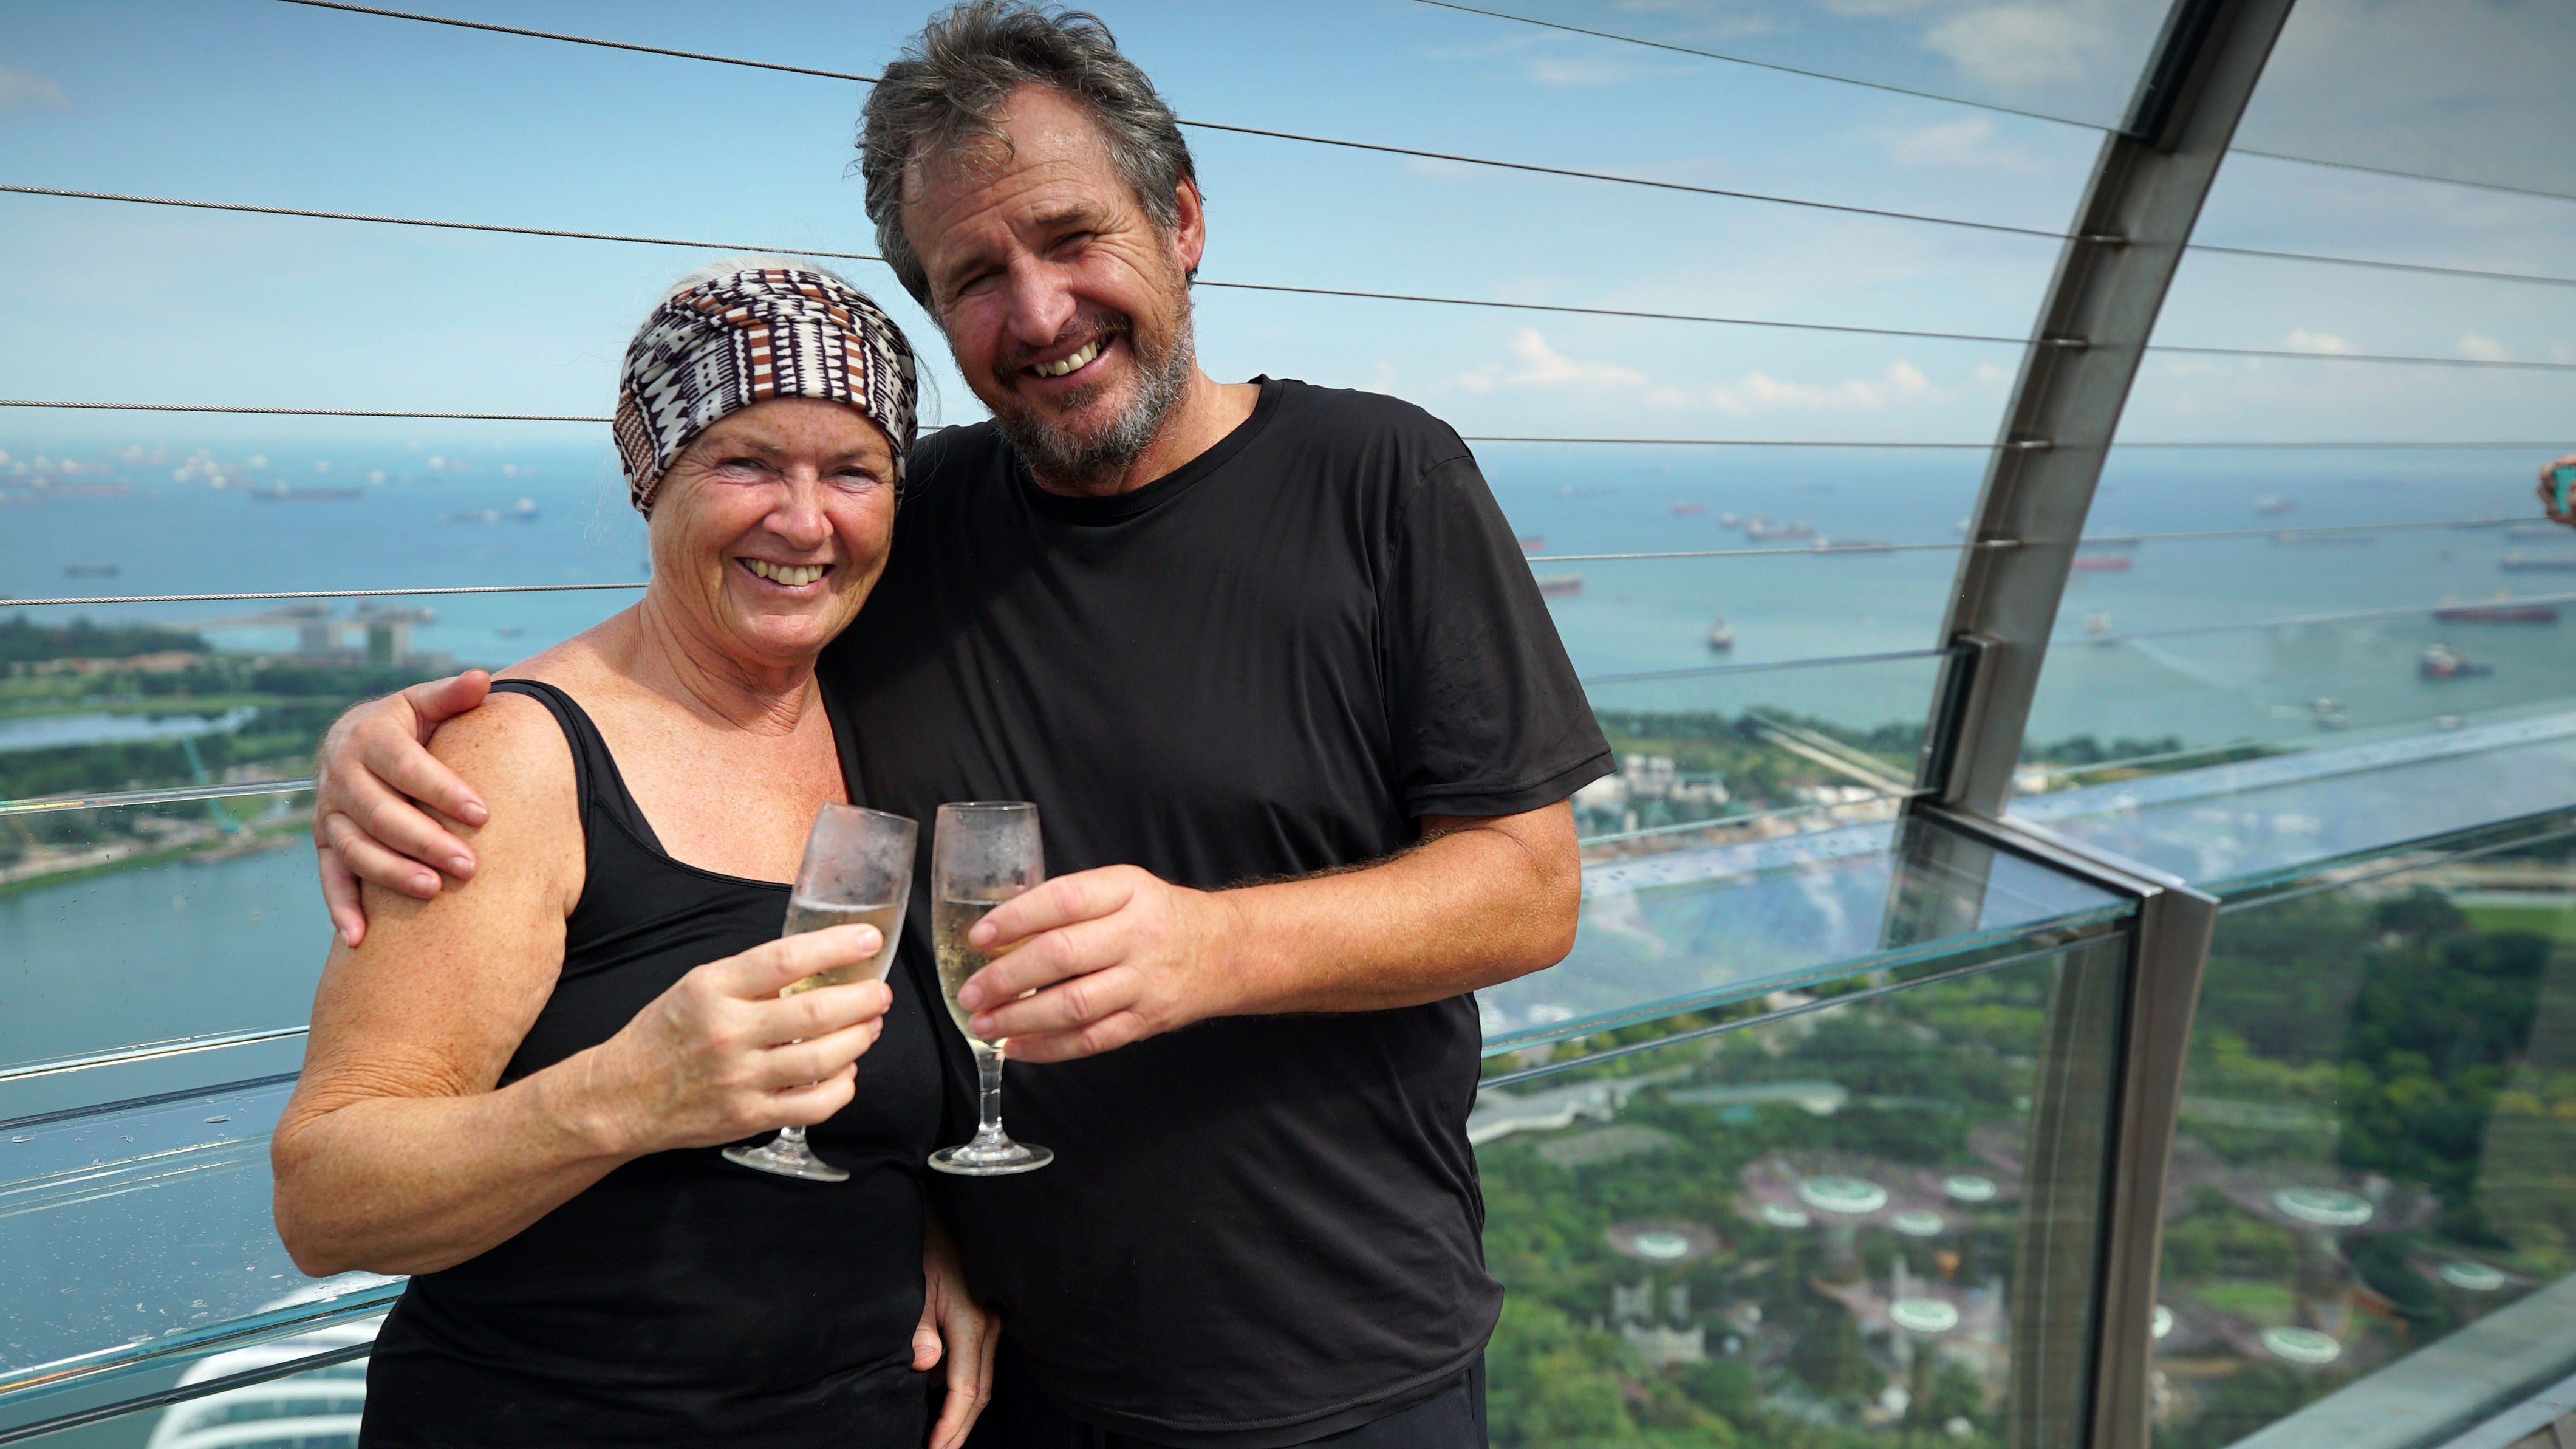 Race Across The World's Elaine and Tony crowned winners after heated sprint to the finish